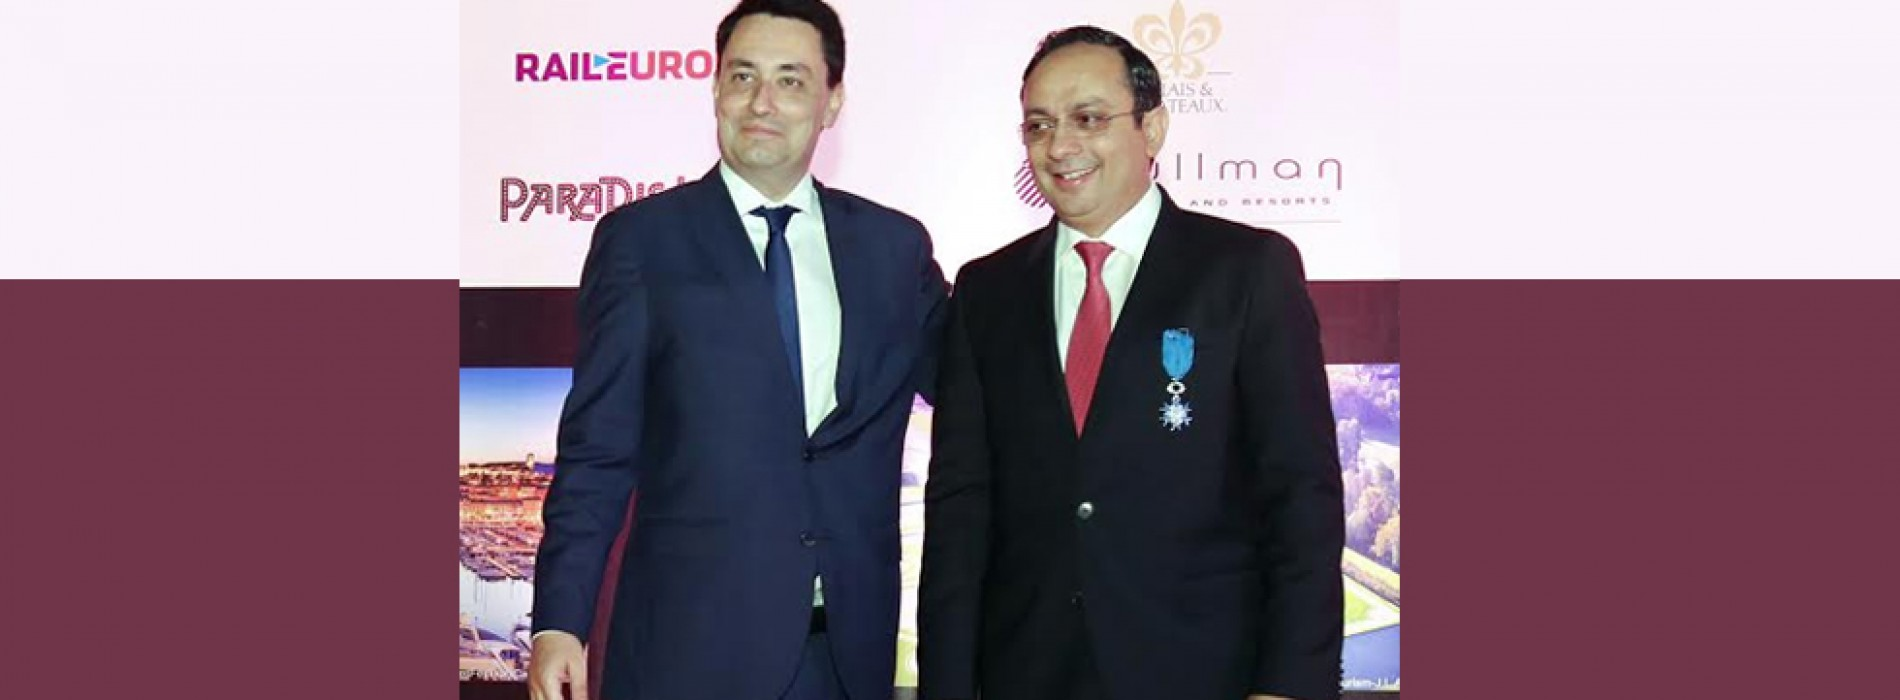 President of France François Hollande bestows the prestigious National Order of Merit on Zubin Karkaria